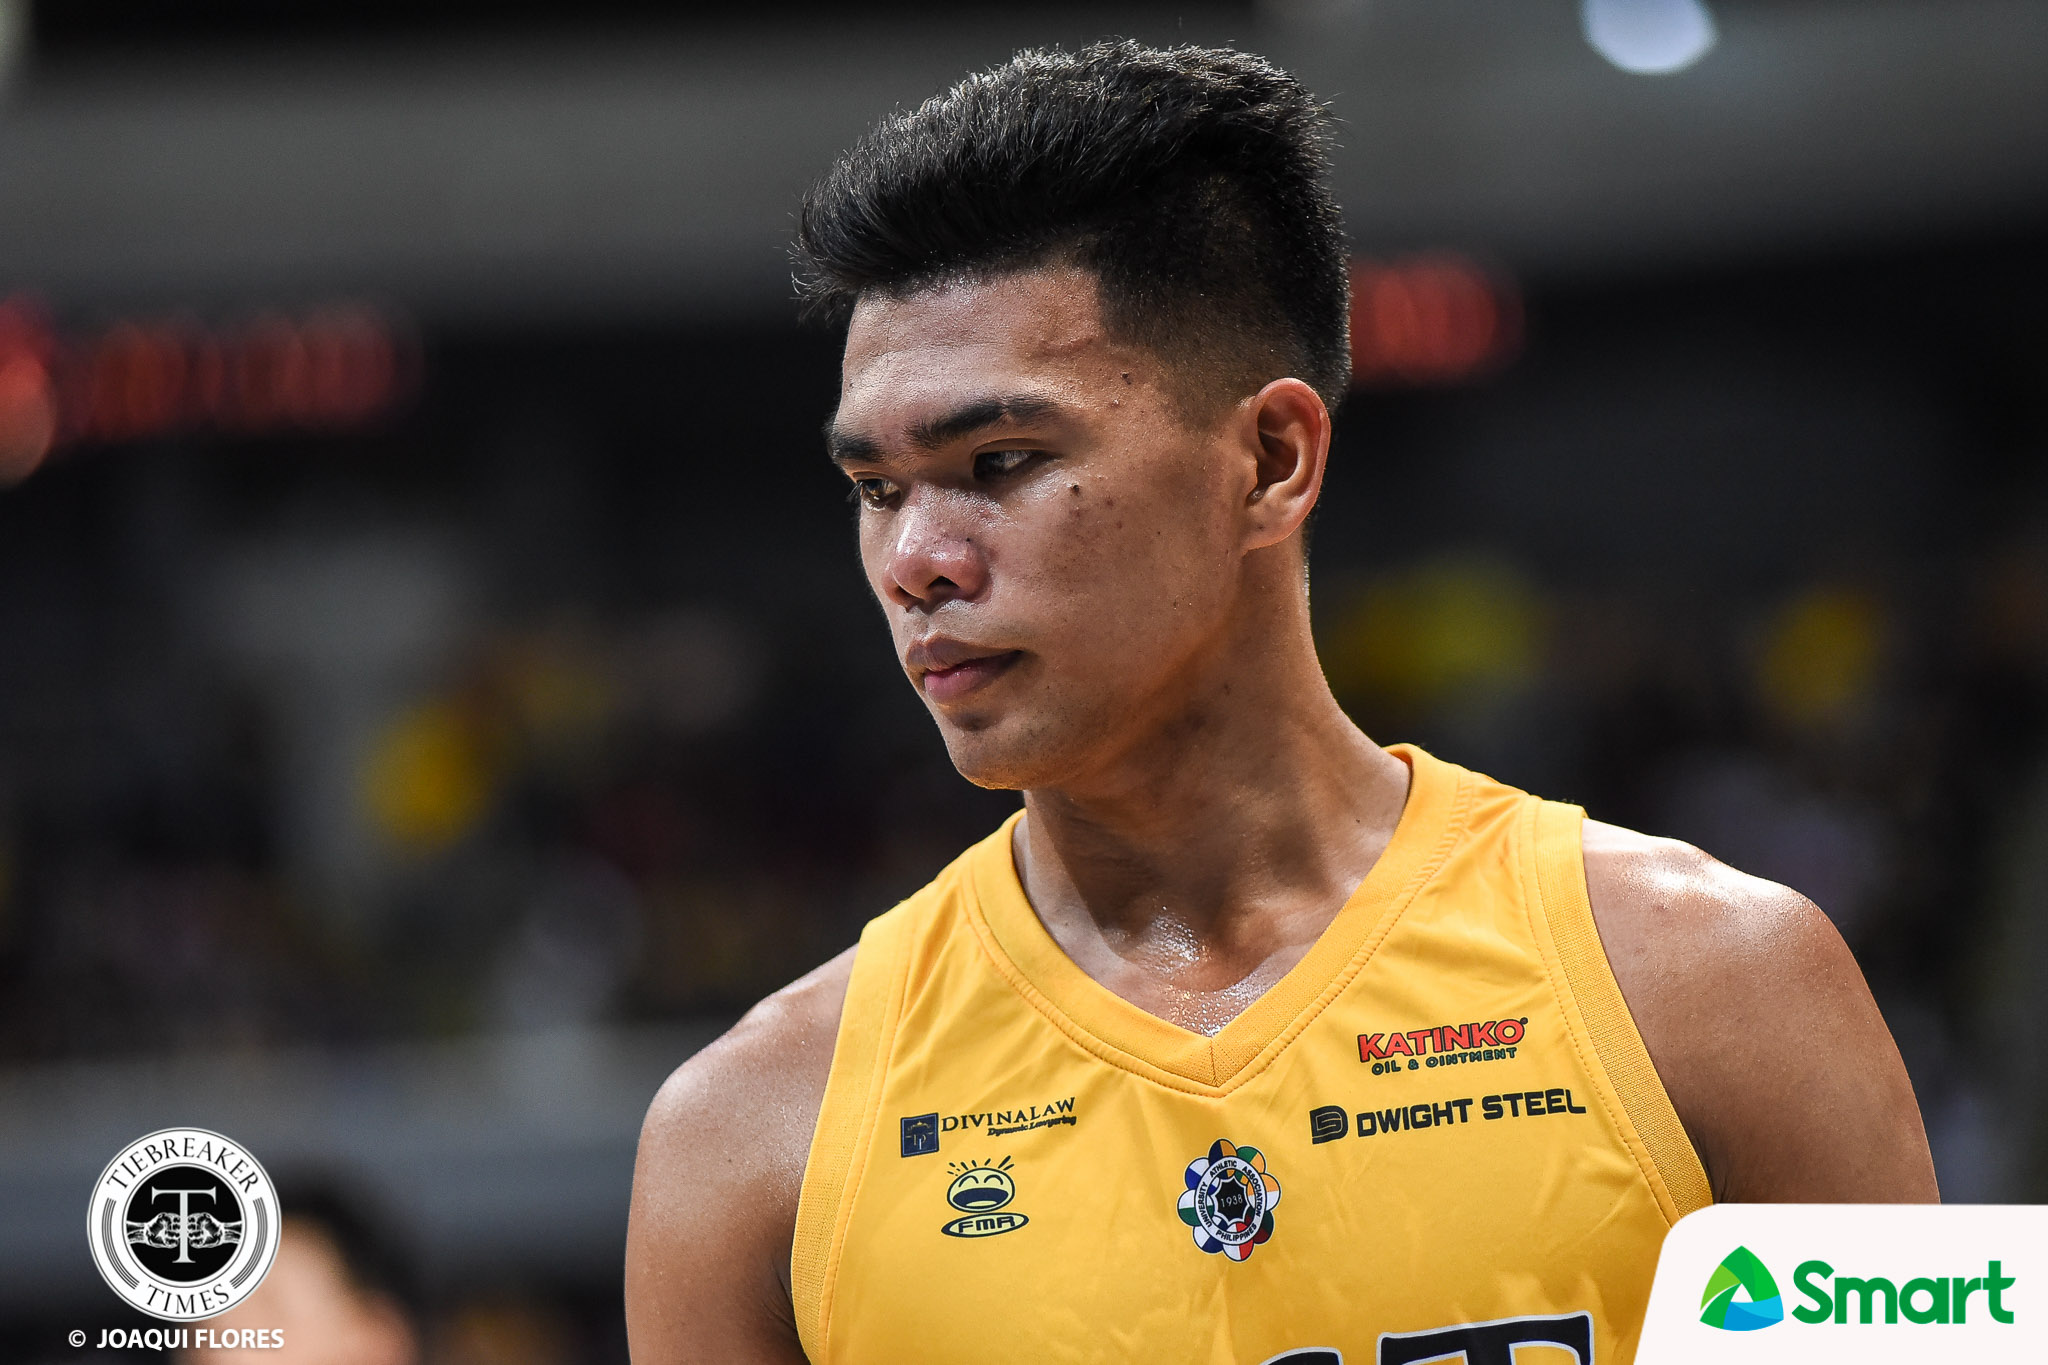 Tiebreaker Times As pressure rises, Aldin Ayo brings UST Growling Tigers closer to home Basketball News UAAP UST  UST Men's Basketball UAAP Season 82 Men's Basketball UAAP Season 82 Aldin Ayo